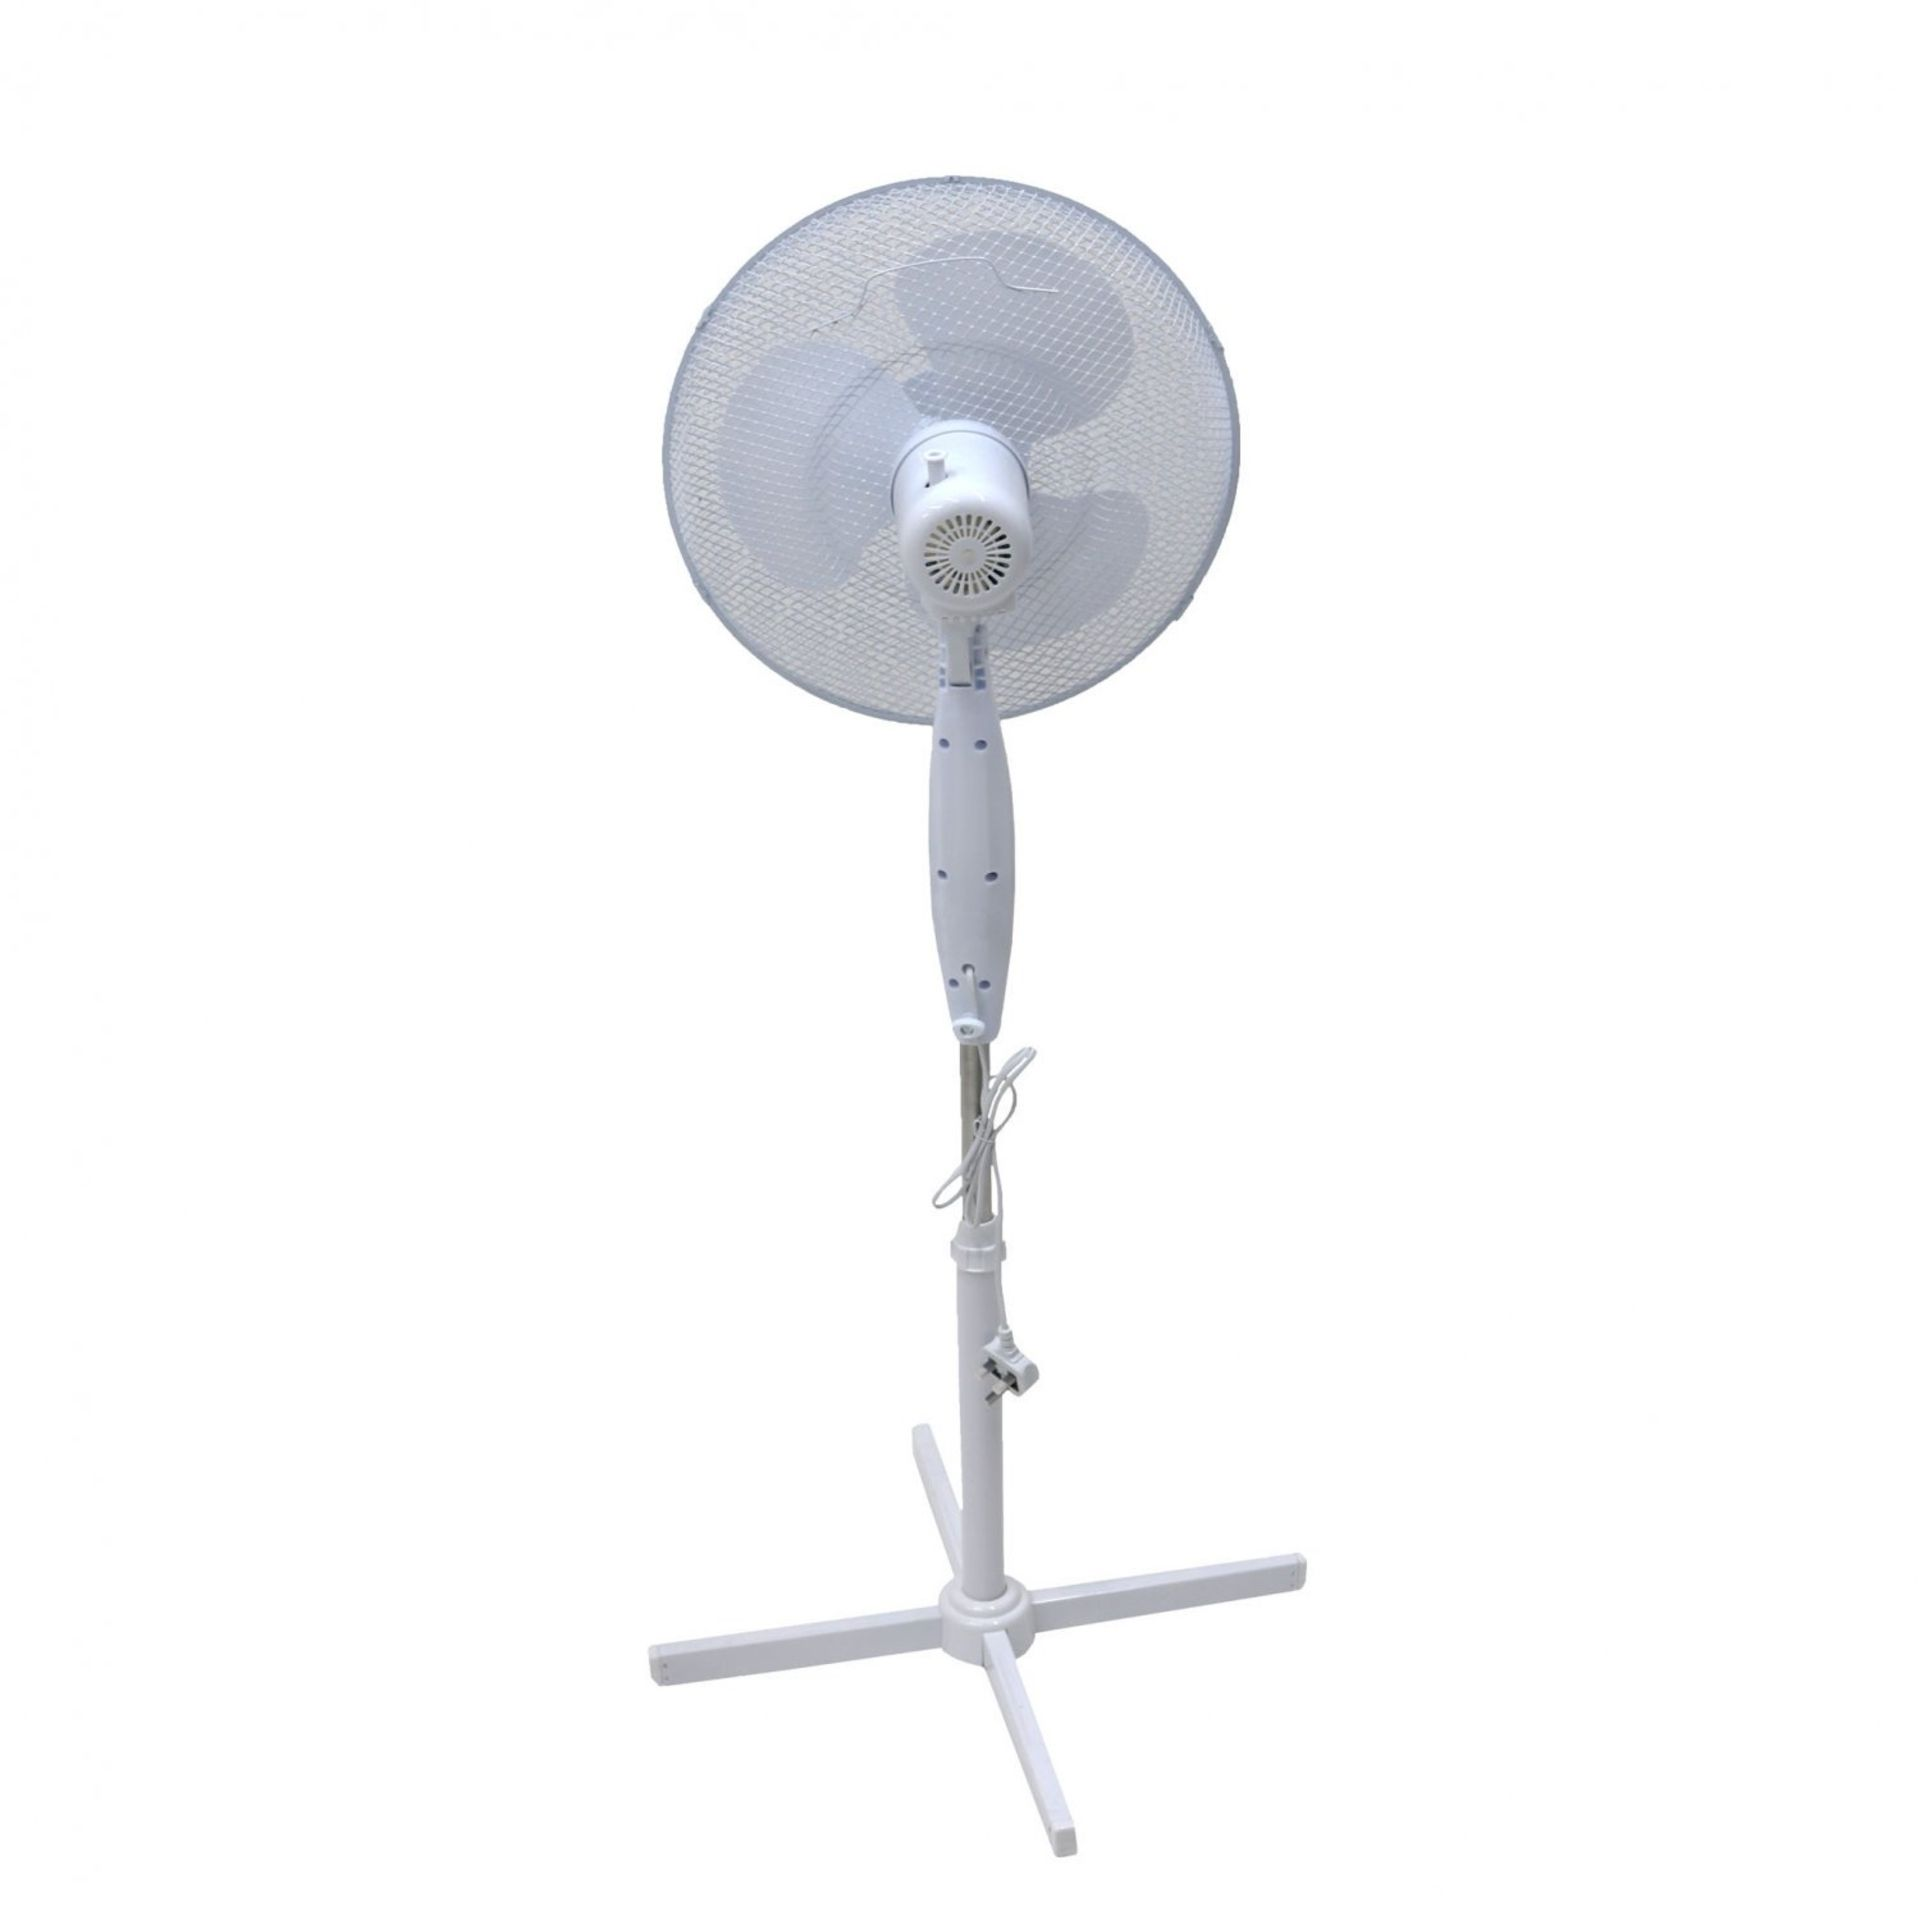 "Lot 5 - (RU2) 16"" Oscillating Pedestal Electric Fan The fan head oscillates and tilts which mea..."